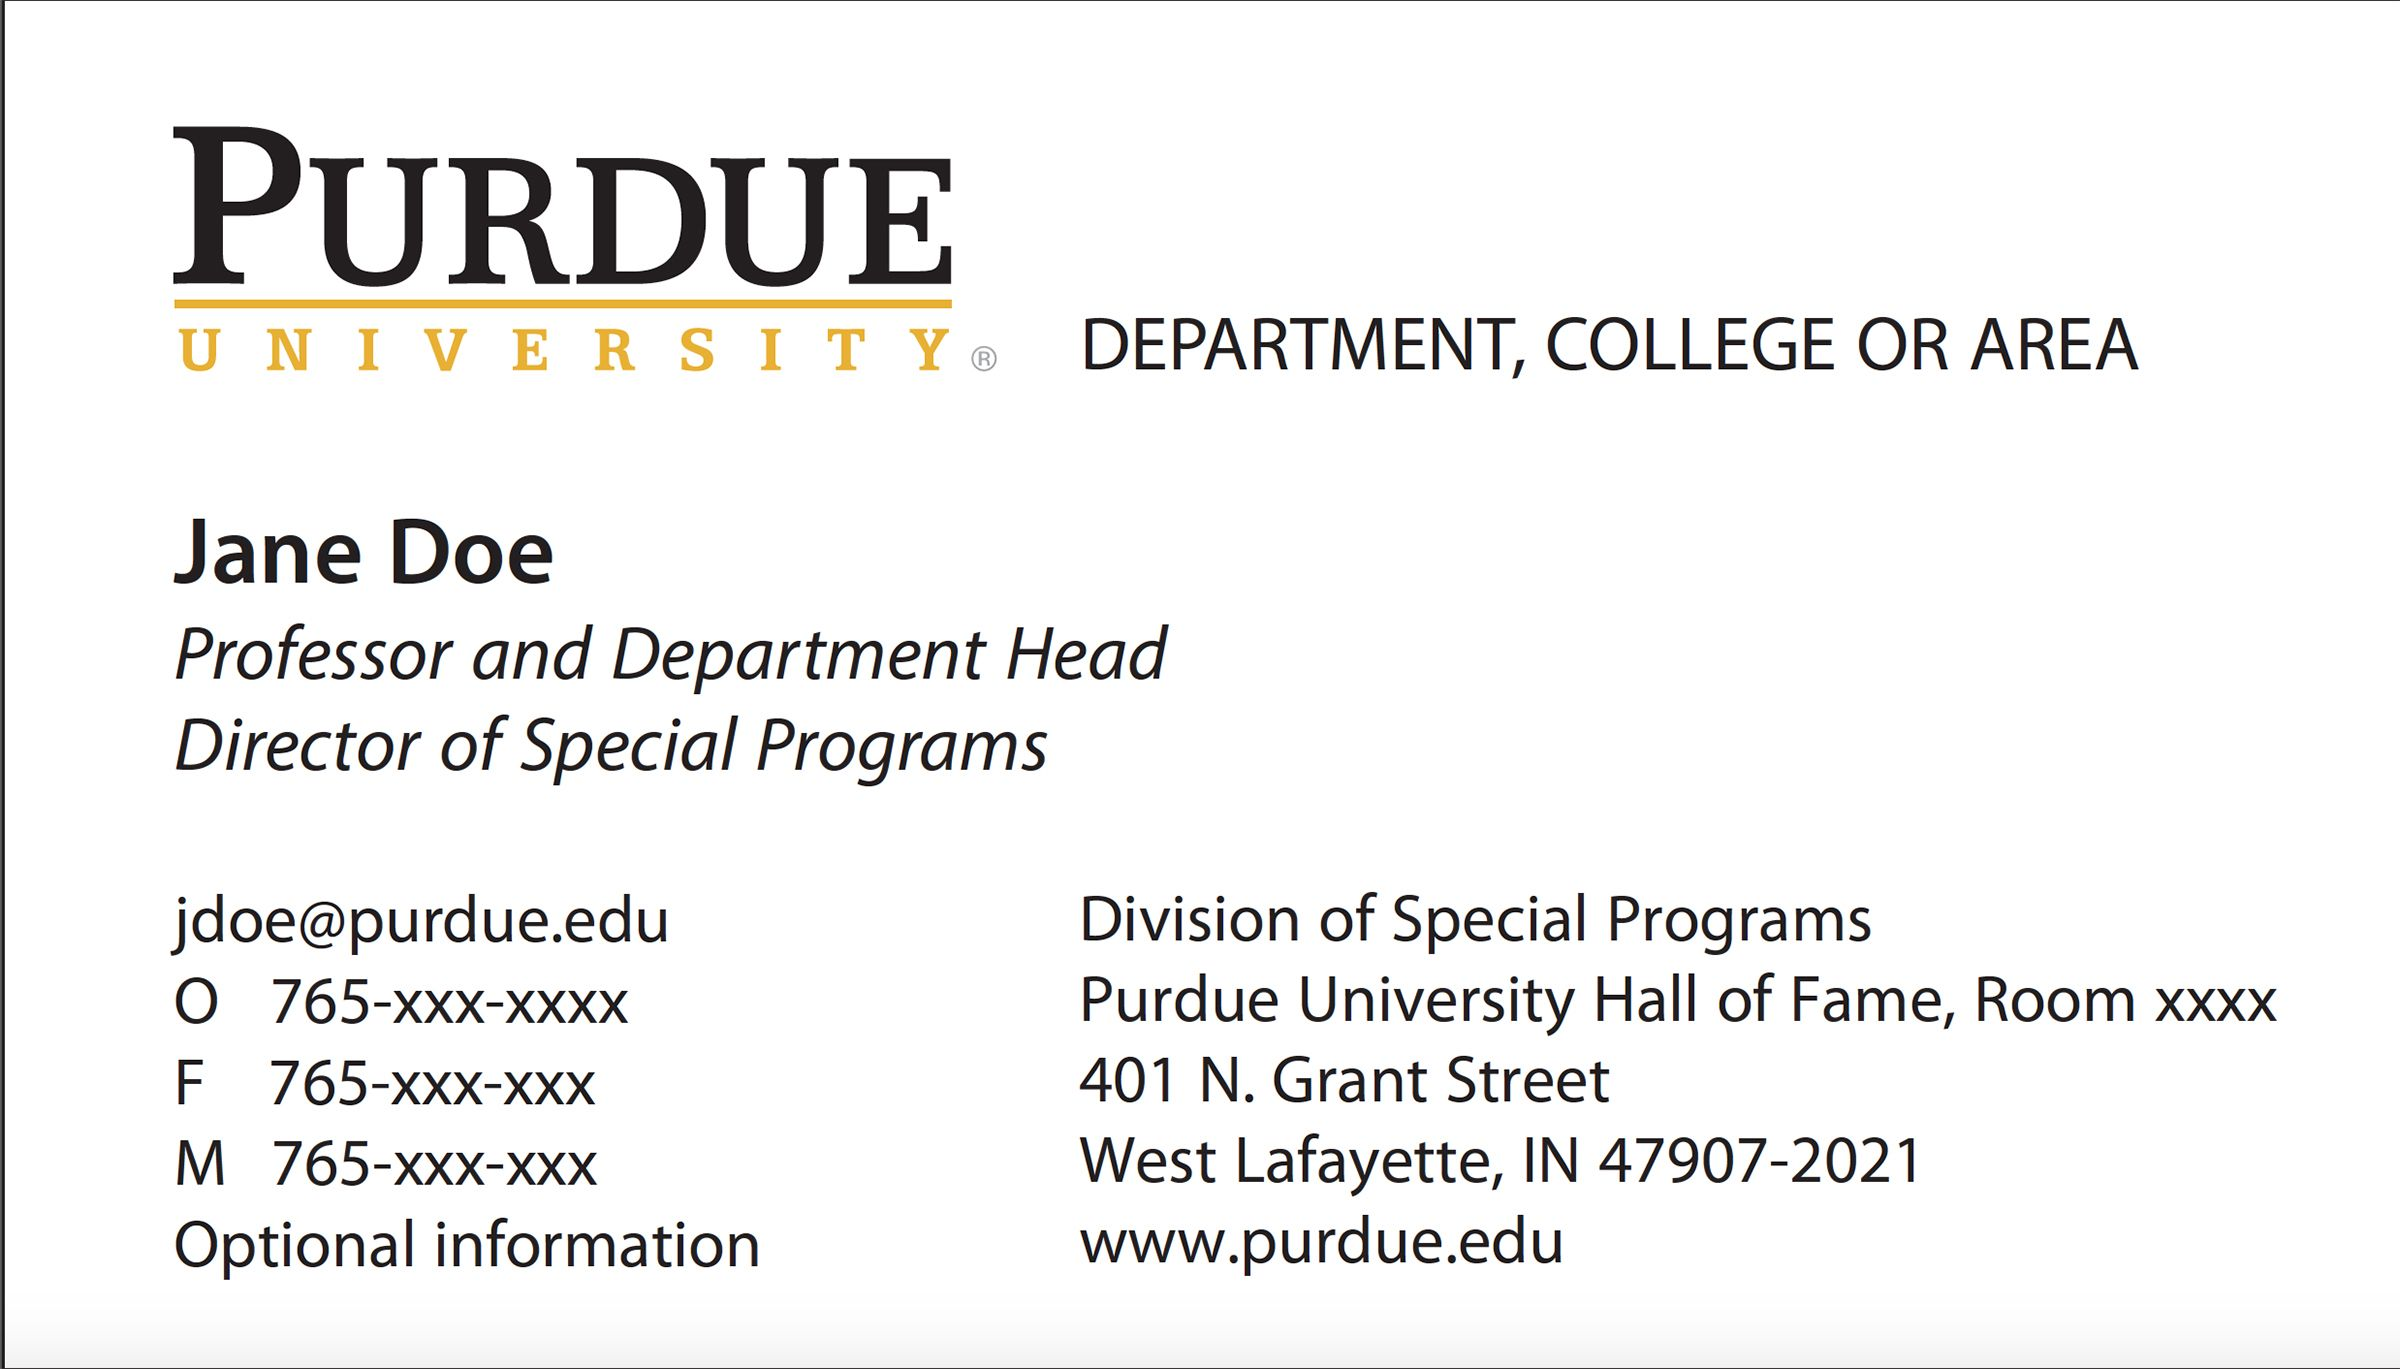 New Business Card Template Now Online Purdue University News With Graduate Student Business Cards Student Business Cards Sample Business Cards Card Template